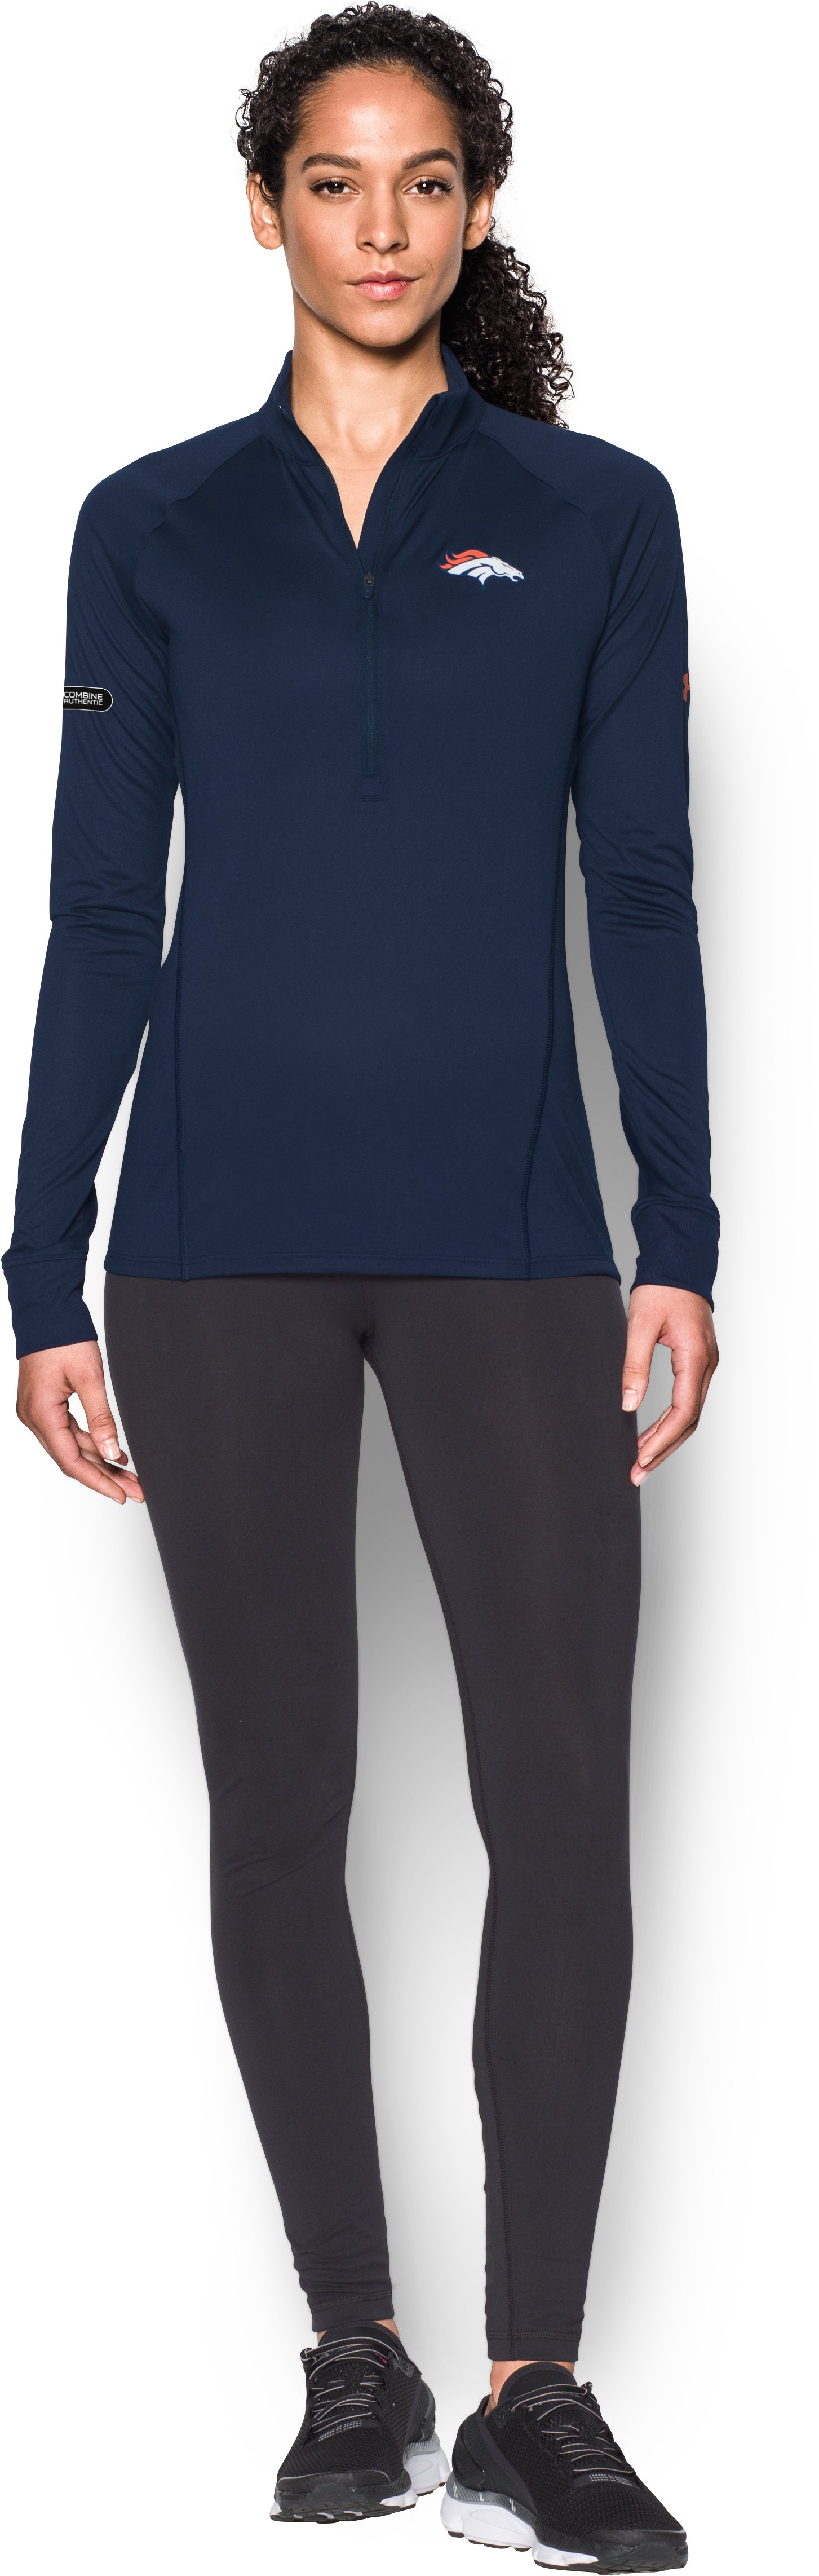 Women's NFL Combine Authentic UA Tech™ ½ Zip, Denver Broncos